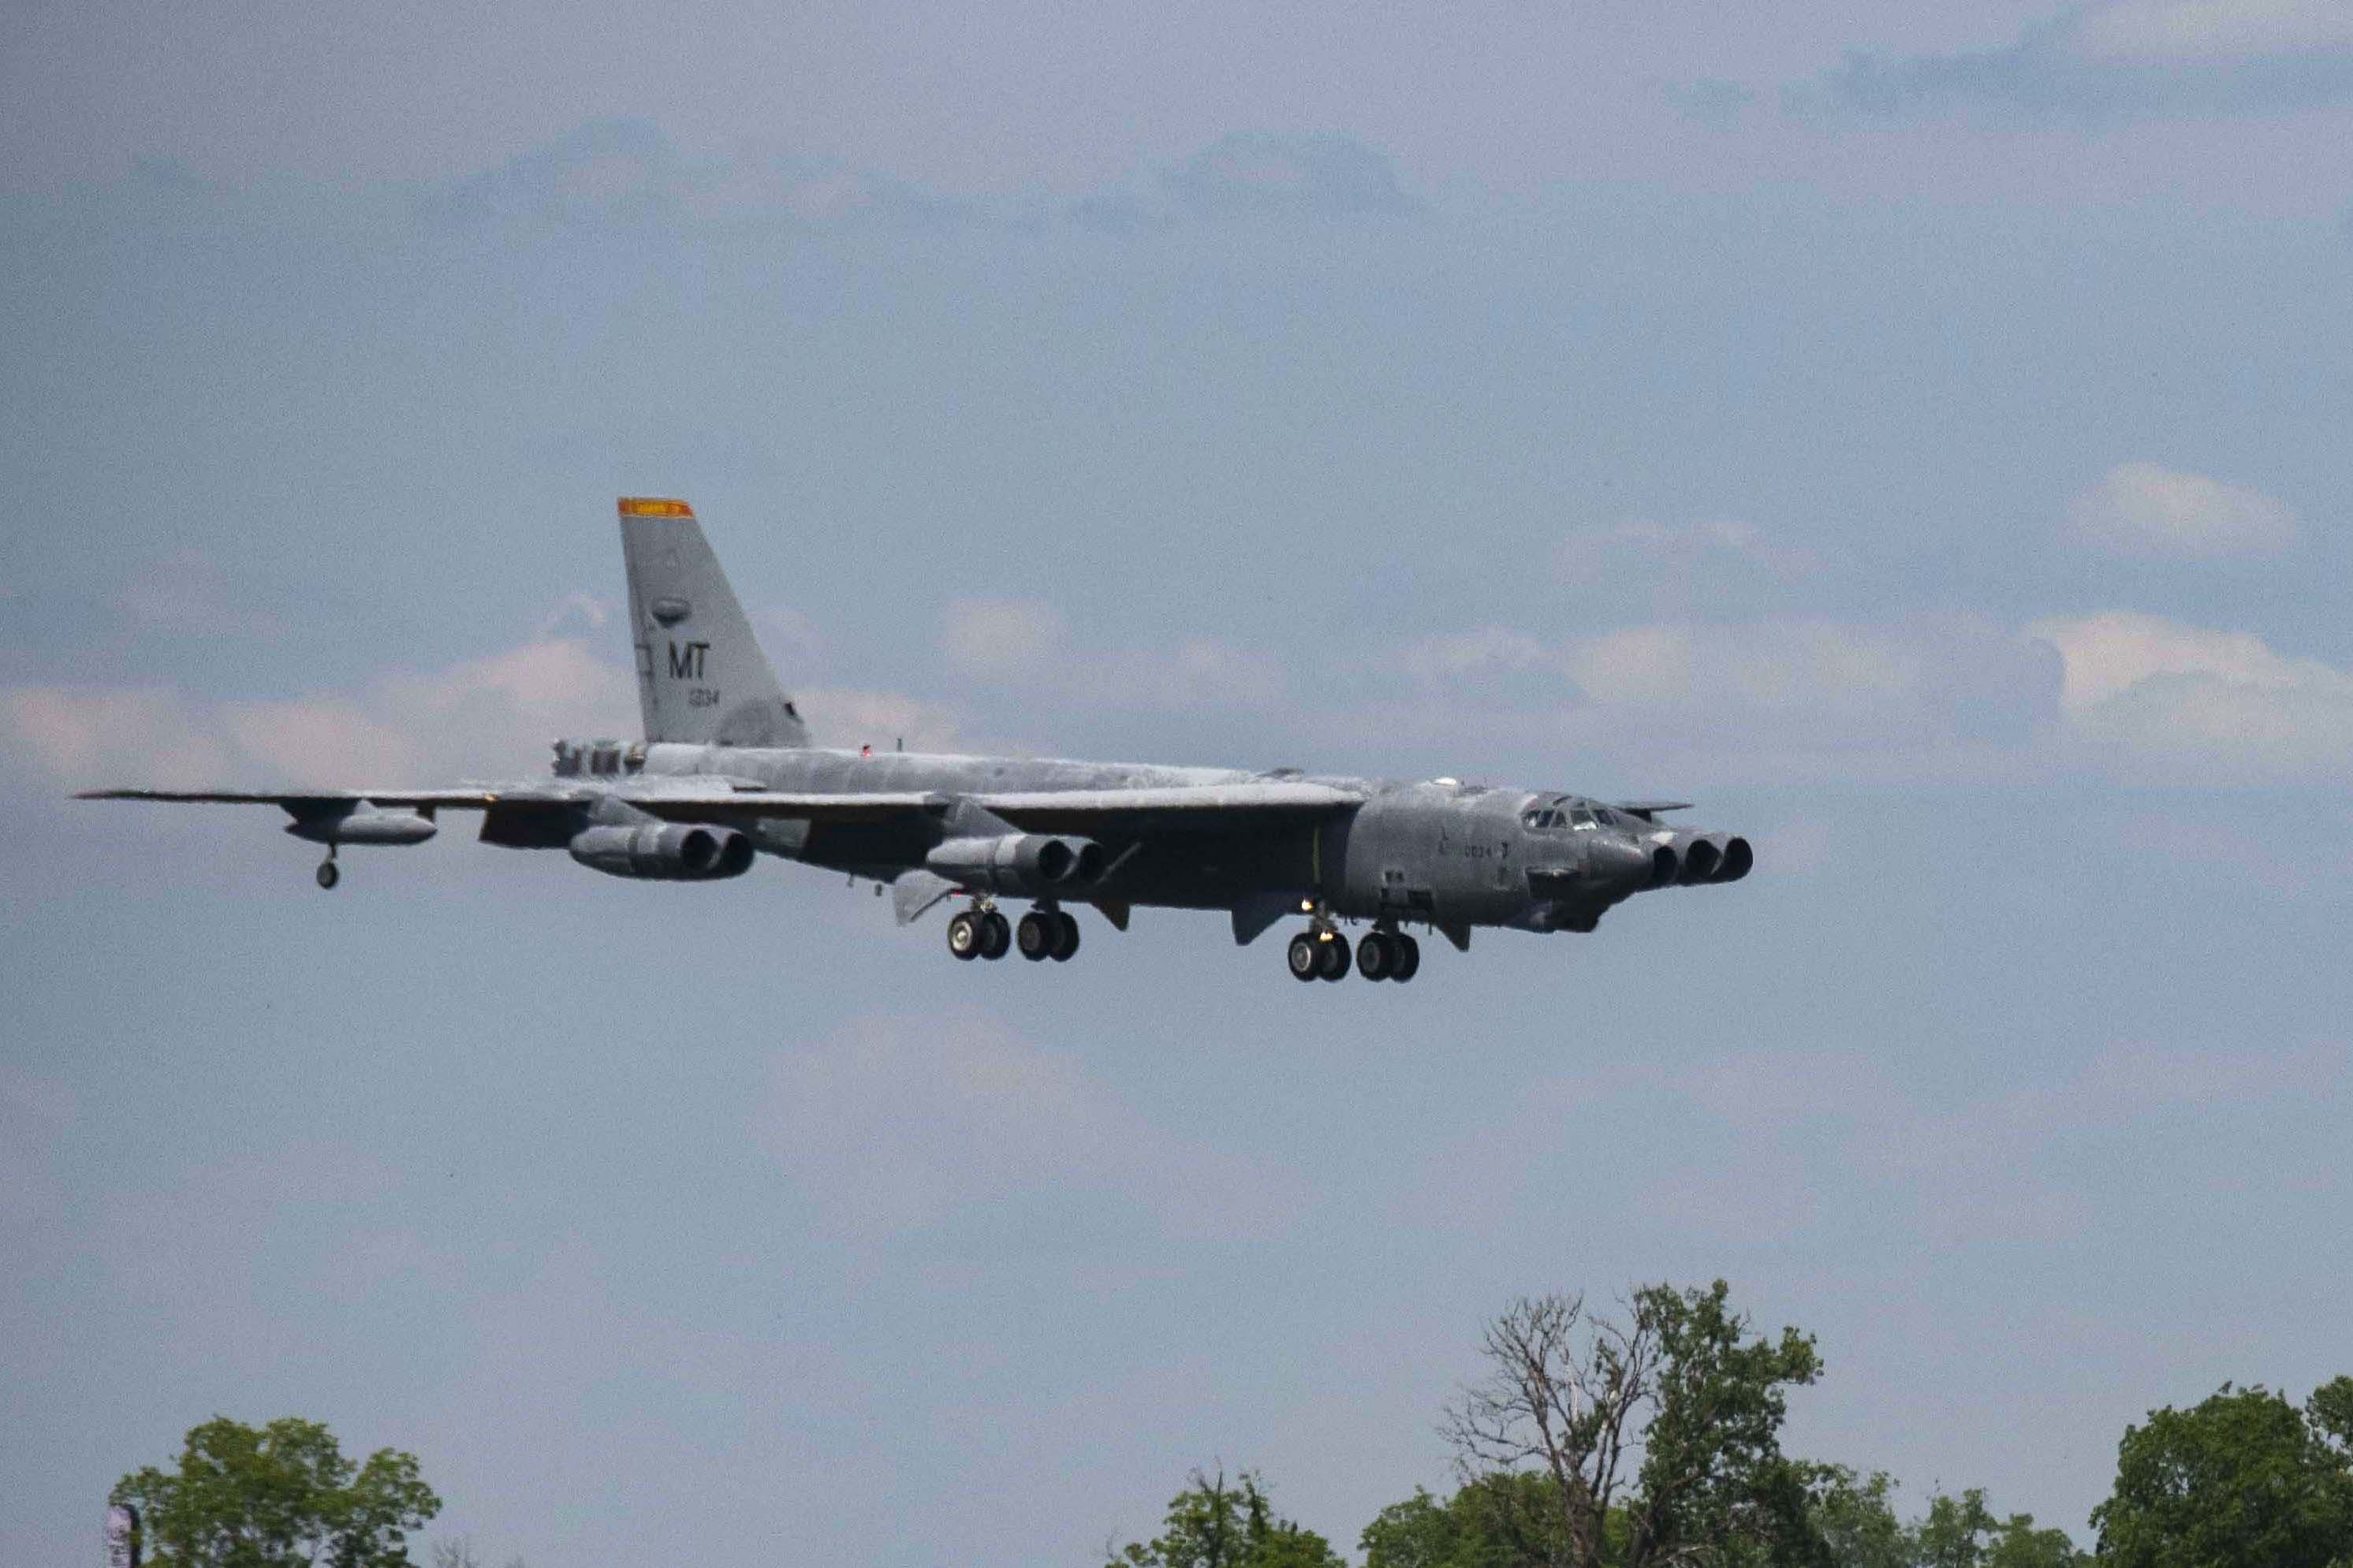 The Air Force Resurrects Another B-52 From the Boneyard